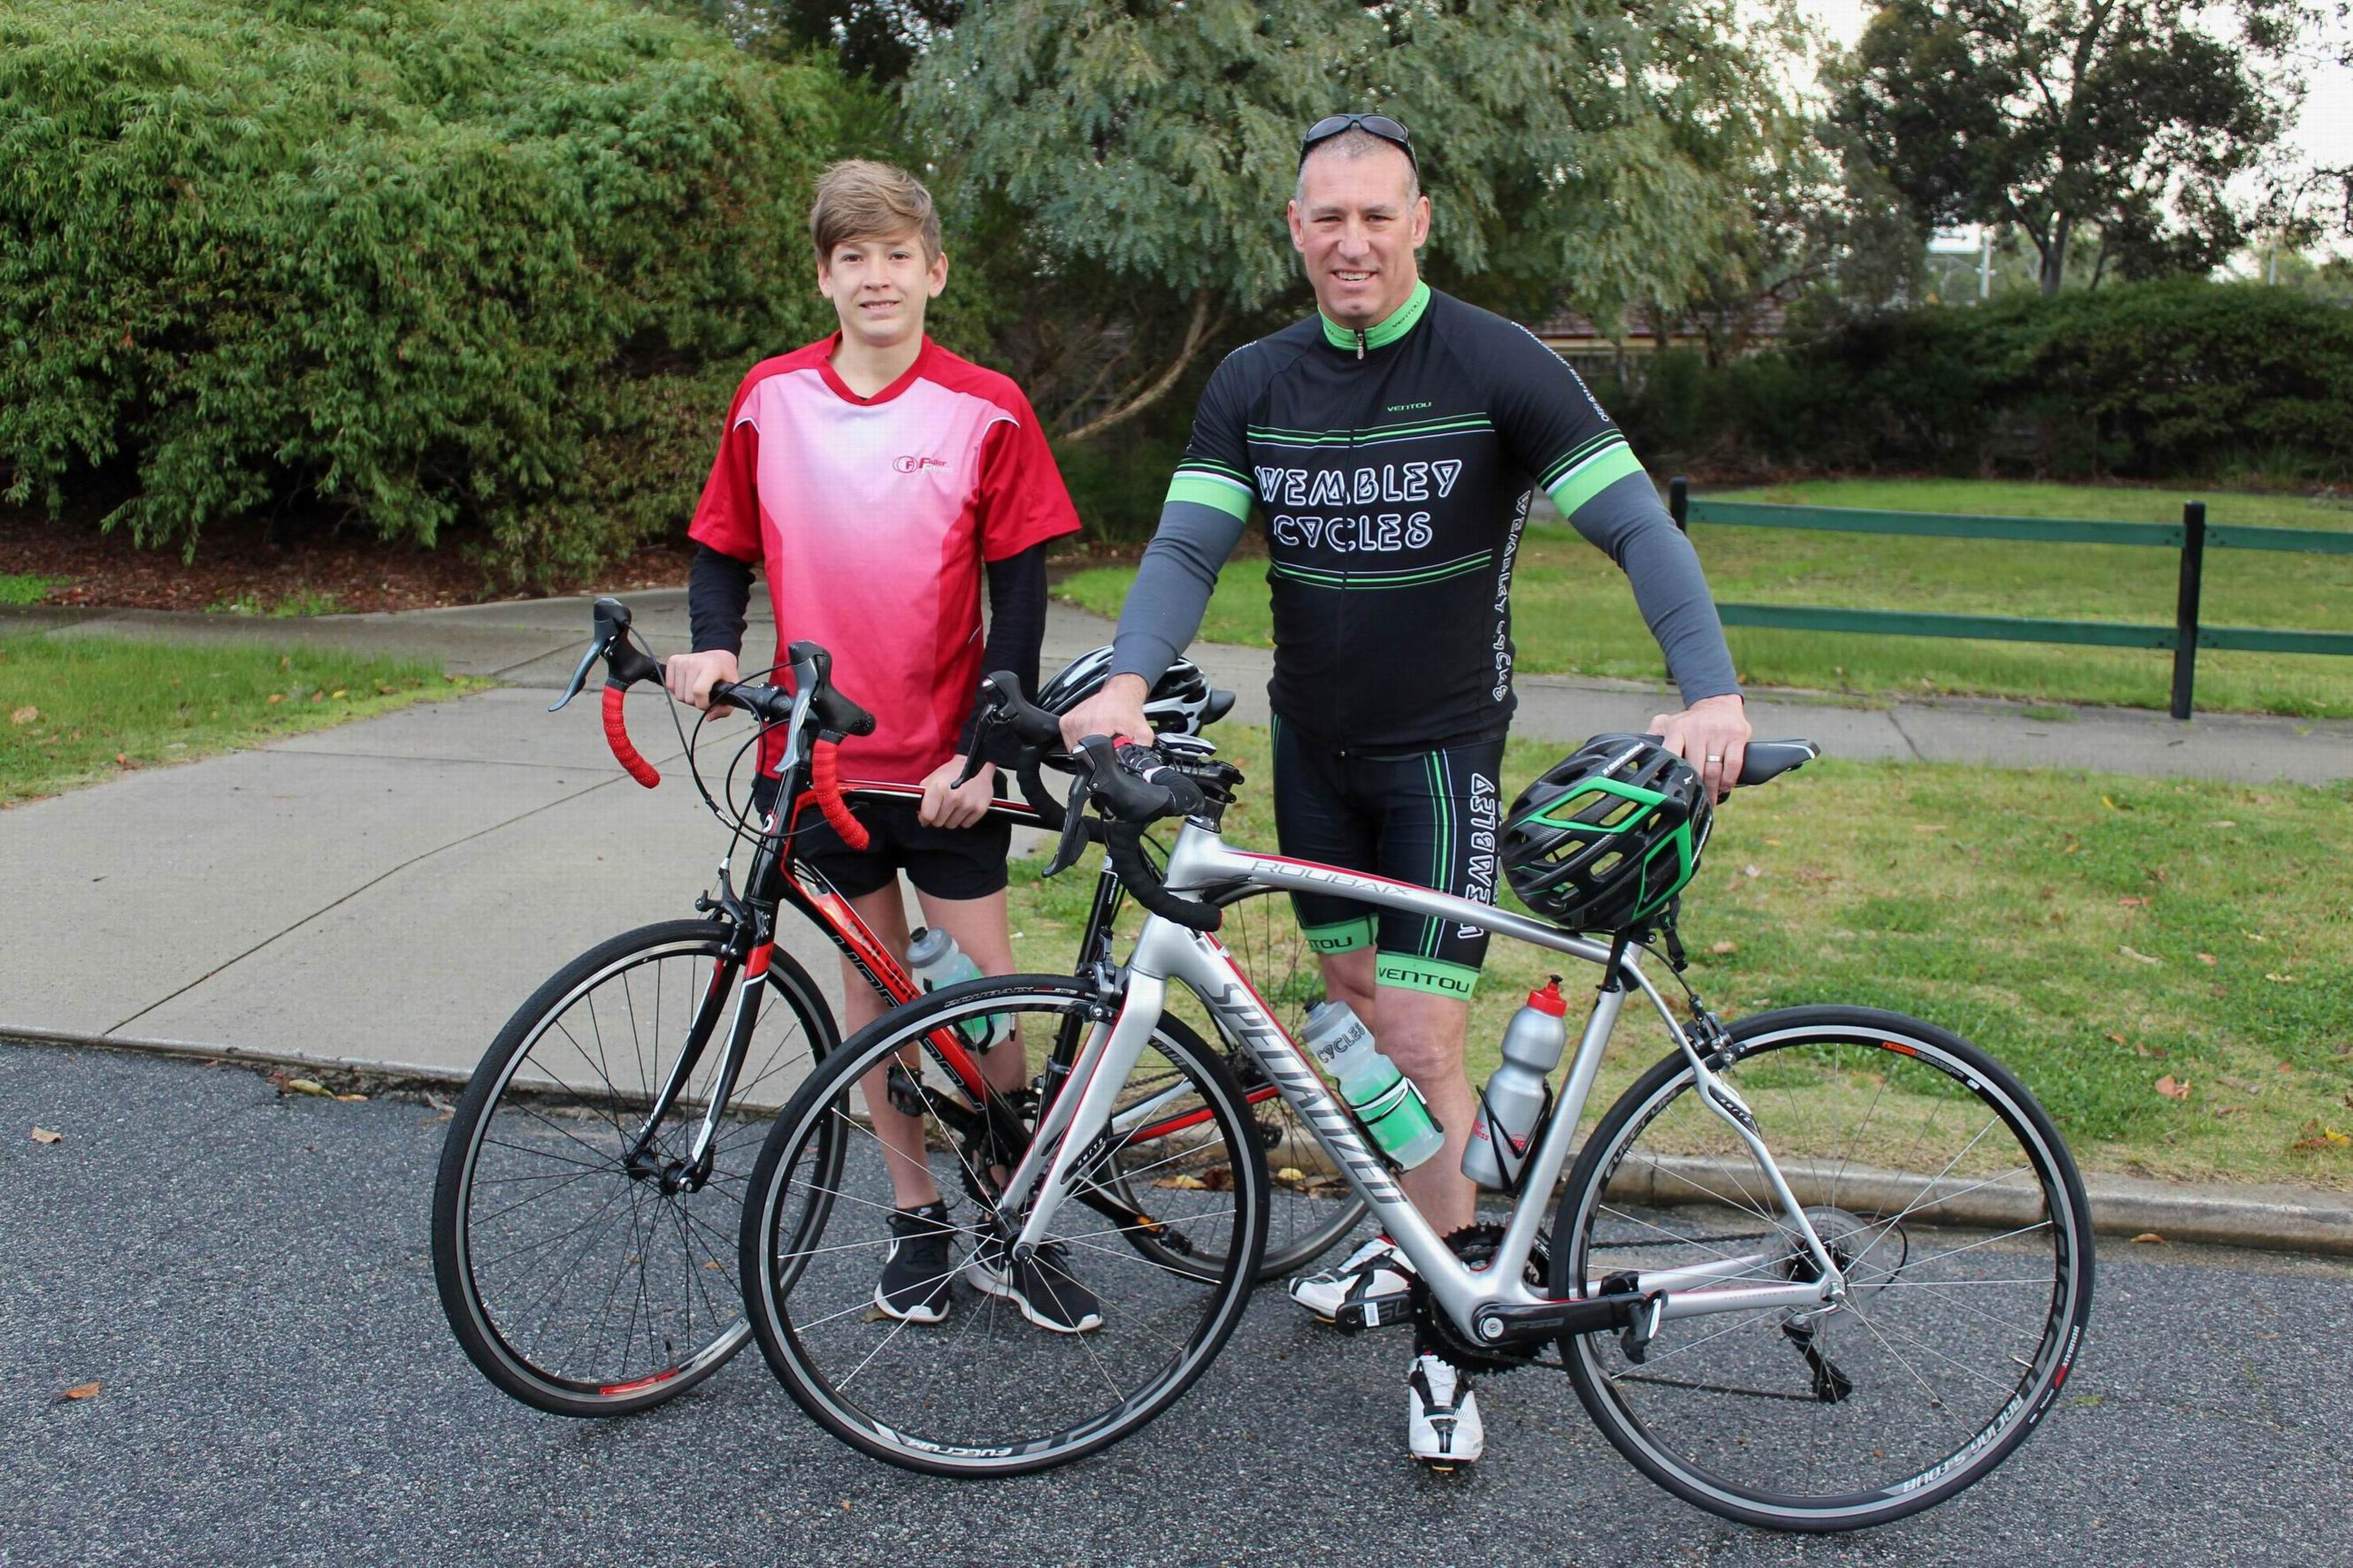 Subiaco businessman teams up with teenager to complete epic bike ride for Telethon